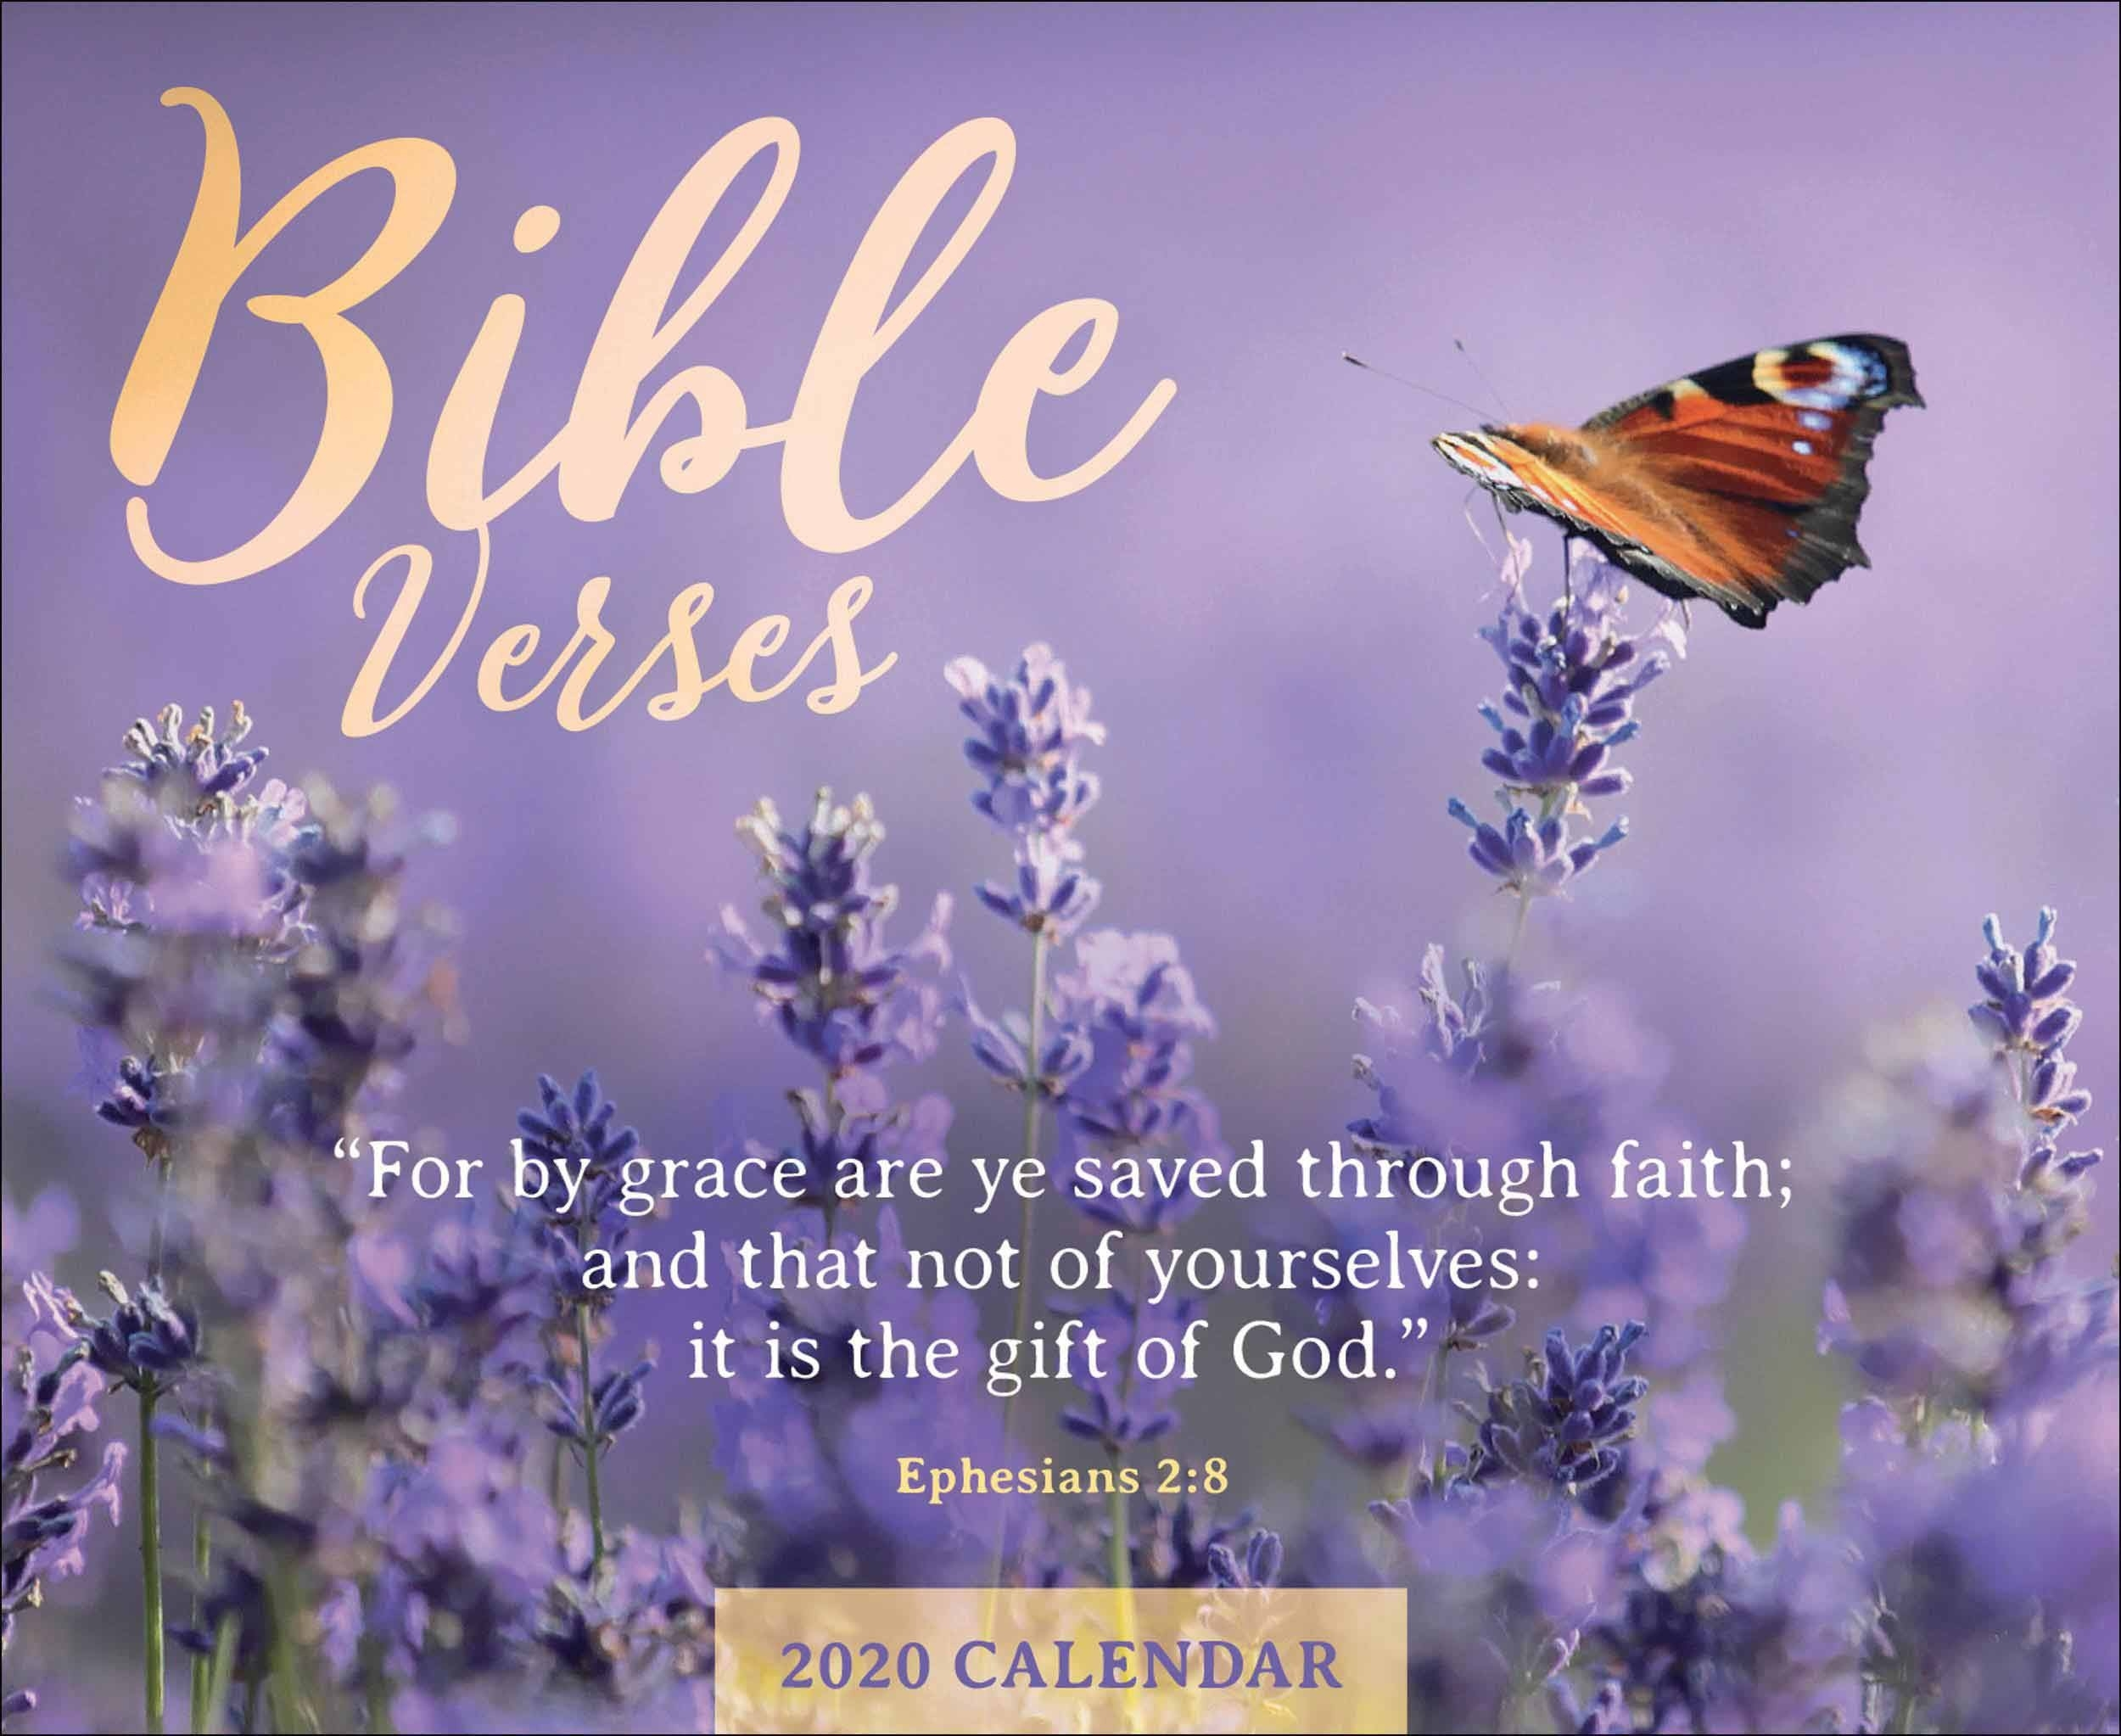 Bible Verses Desk Calendar 2020  Advent Scripture Readings 2020 Calendar